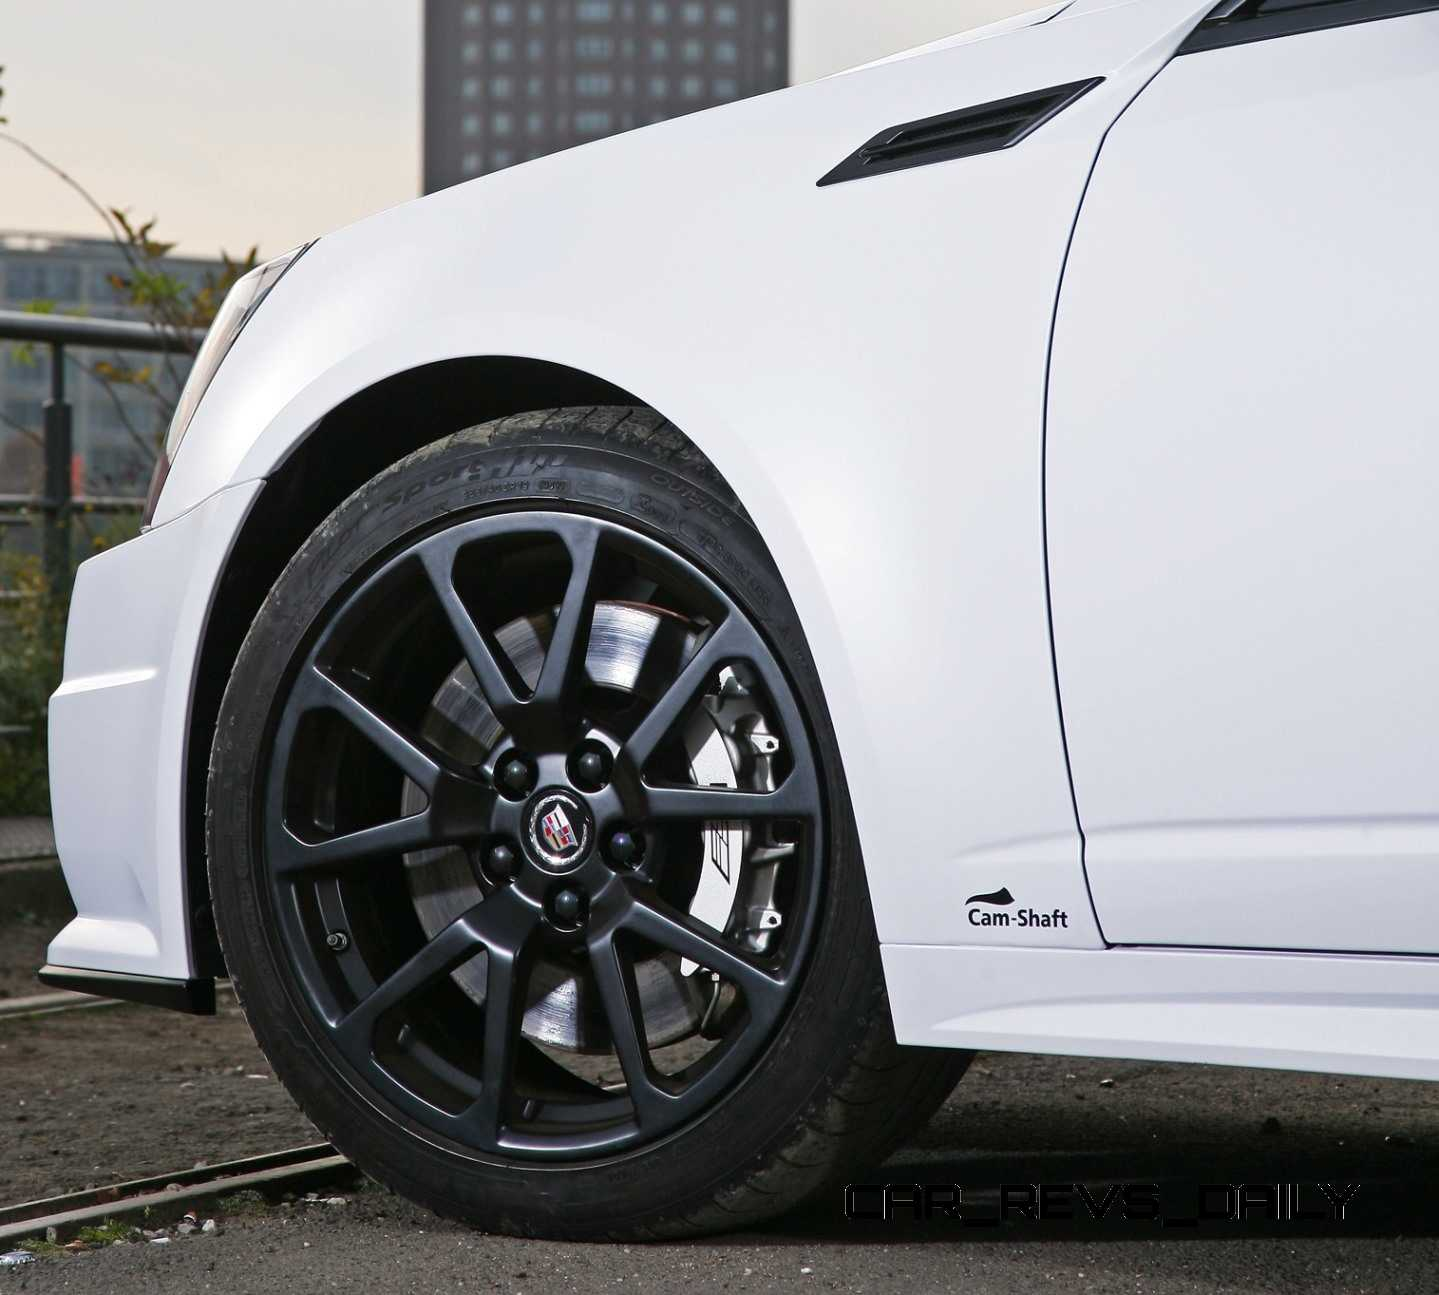 2014 Cadillac Cts Camshaft: 2012 Cadillac CTS-V With Satin White Wrap By CAMSHAFT